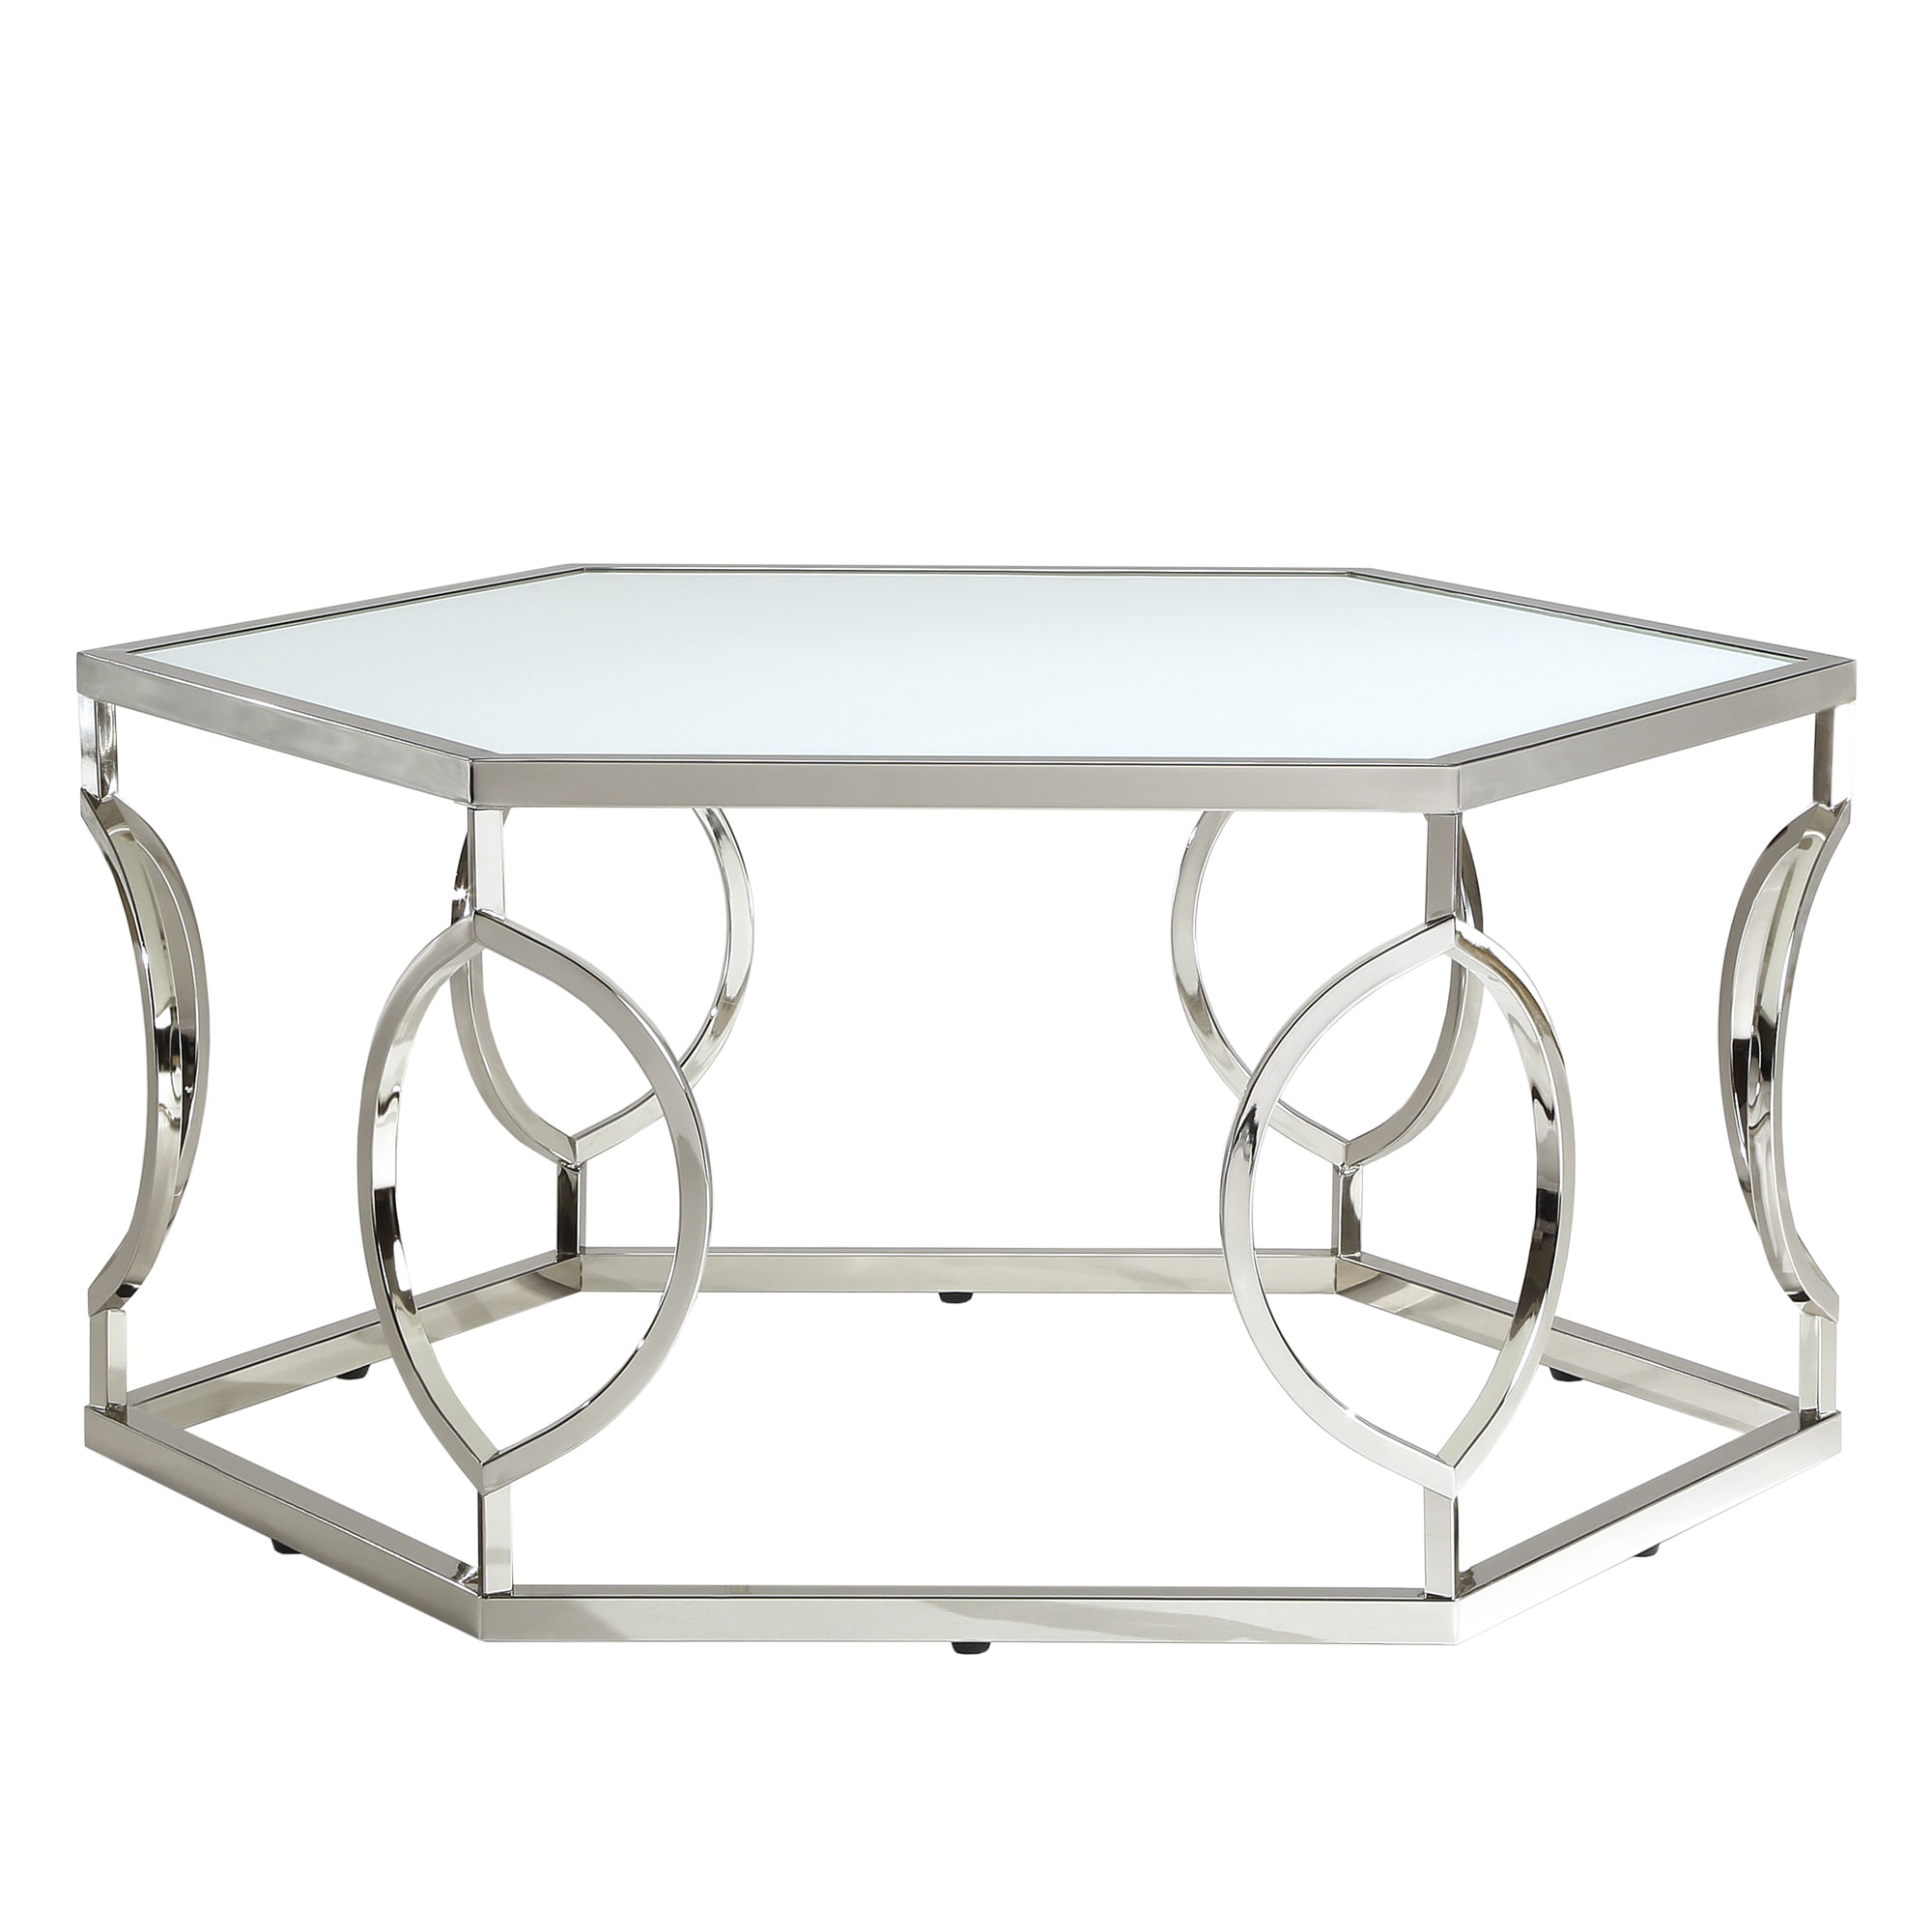 Elegant Davlin Contemporary Glam Hexagonal Metal Frosted Glass Coffee Table By  INSPIRE Q Bold   Free Shipping Today   Overstock   16986113